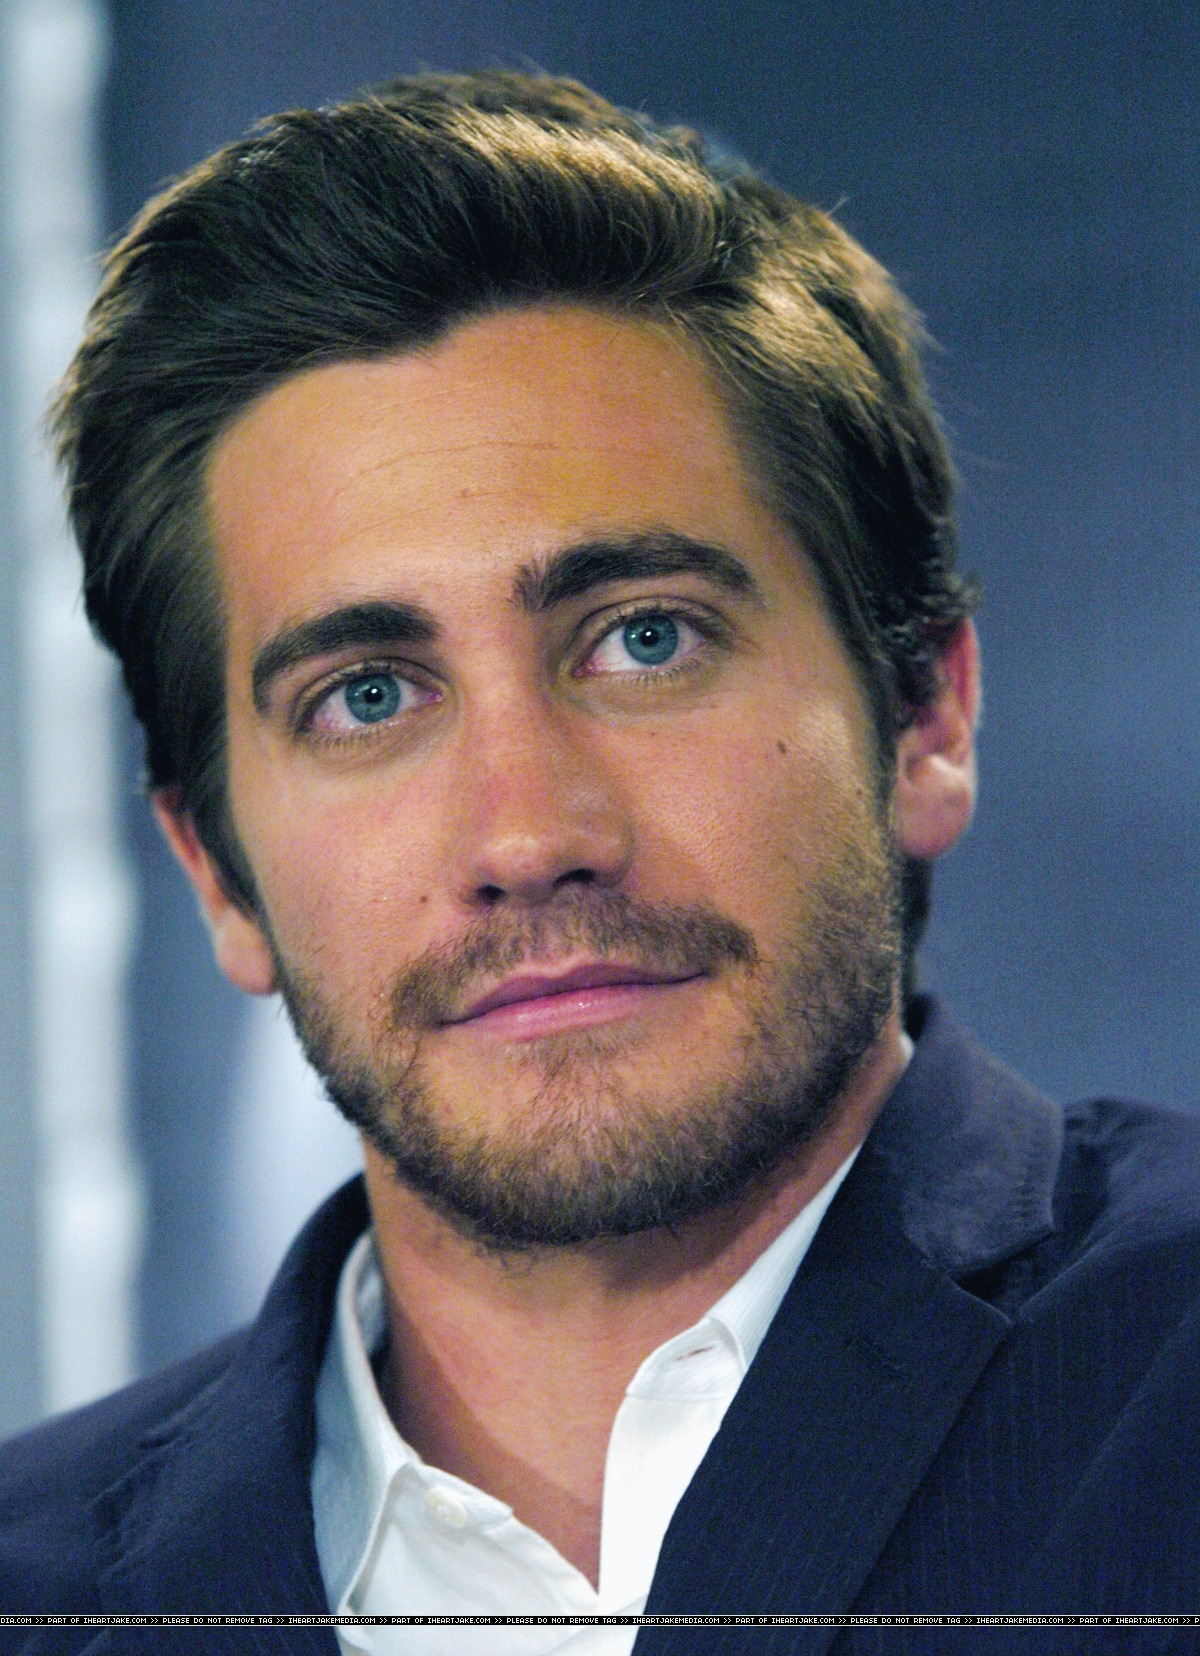 Jake Gyllenhaal - Jake Gyllenhaal Photo (27441273) - Fanpop Jake Gyllenhaal